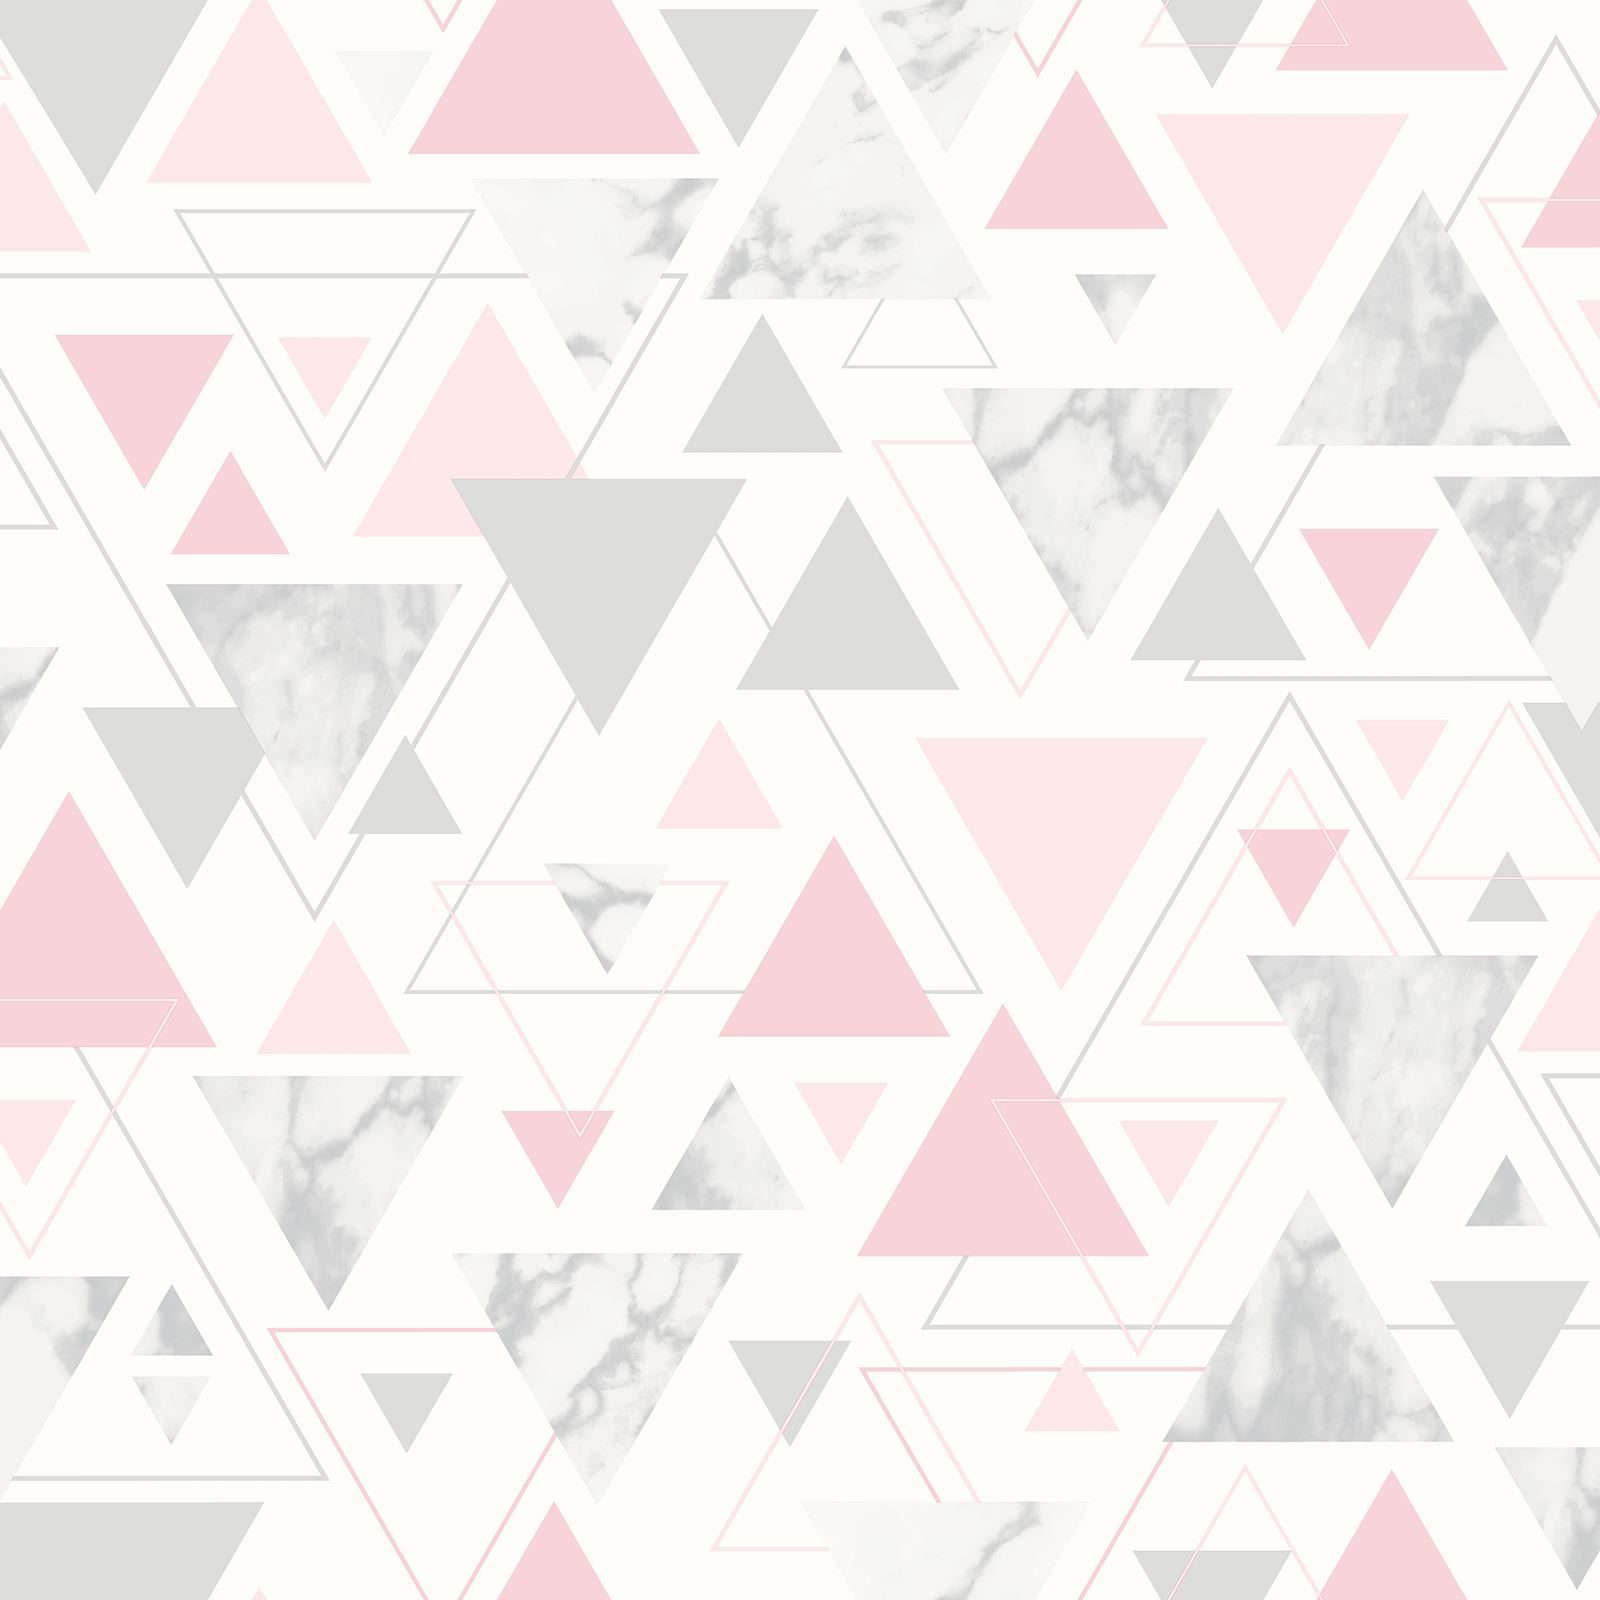 Details About Debona Chantilly Marble Geometric Triangle Wallpaper 5013 Pink Grey Pastel